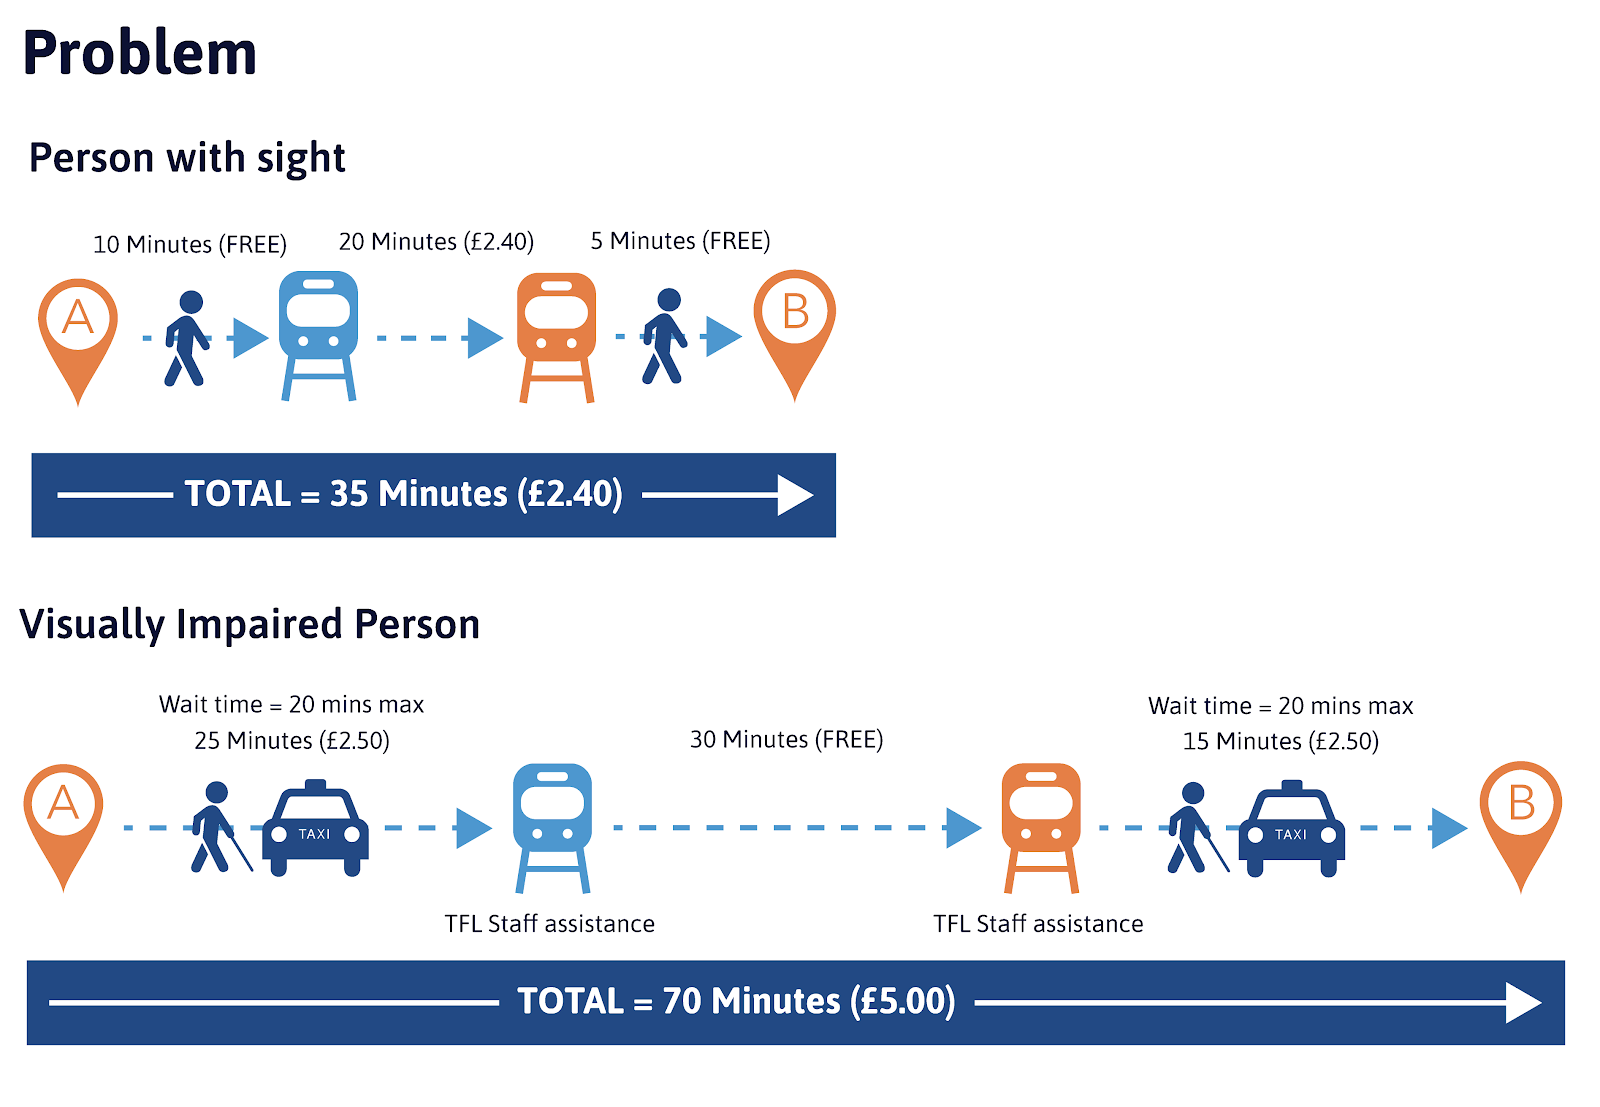 Image showing comparison of price and time taken for VIP and person with sight travelling in London with public transport